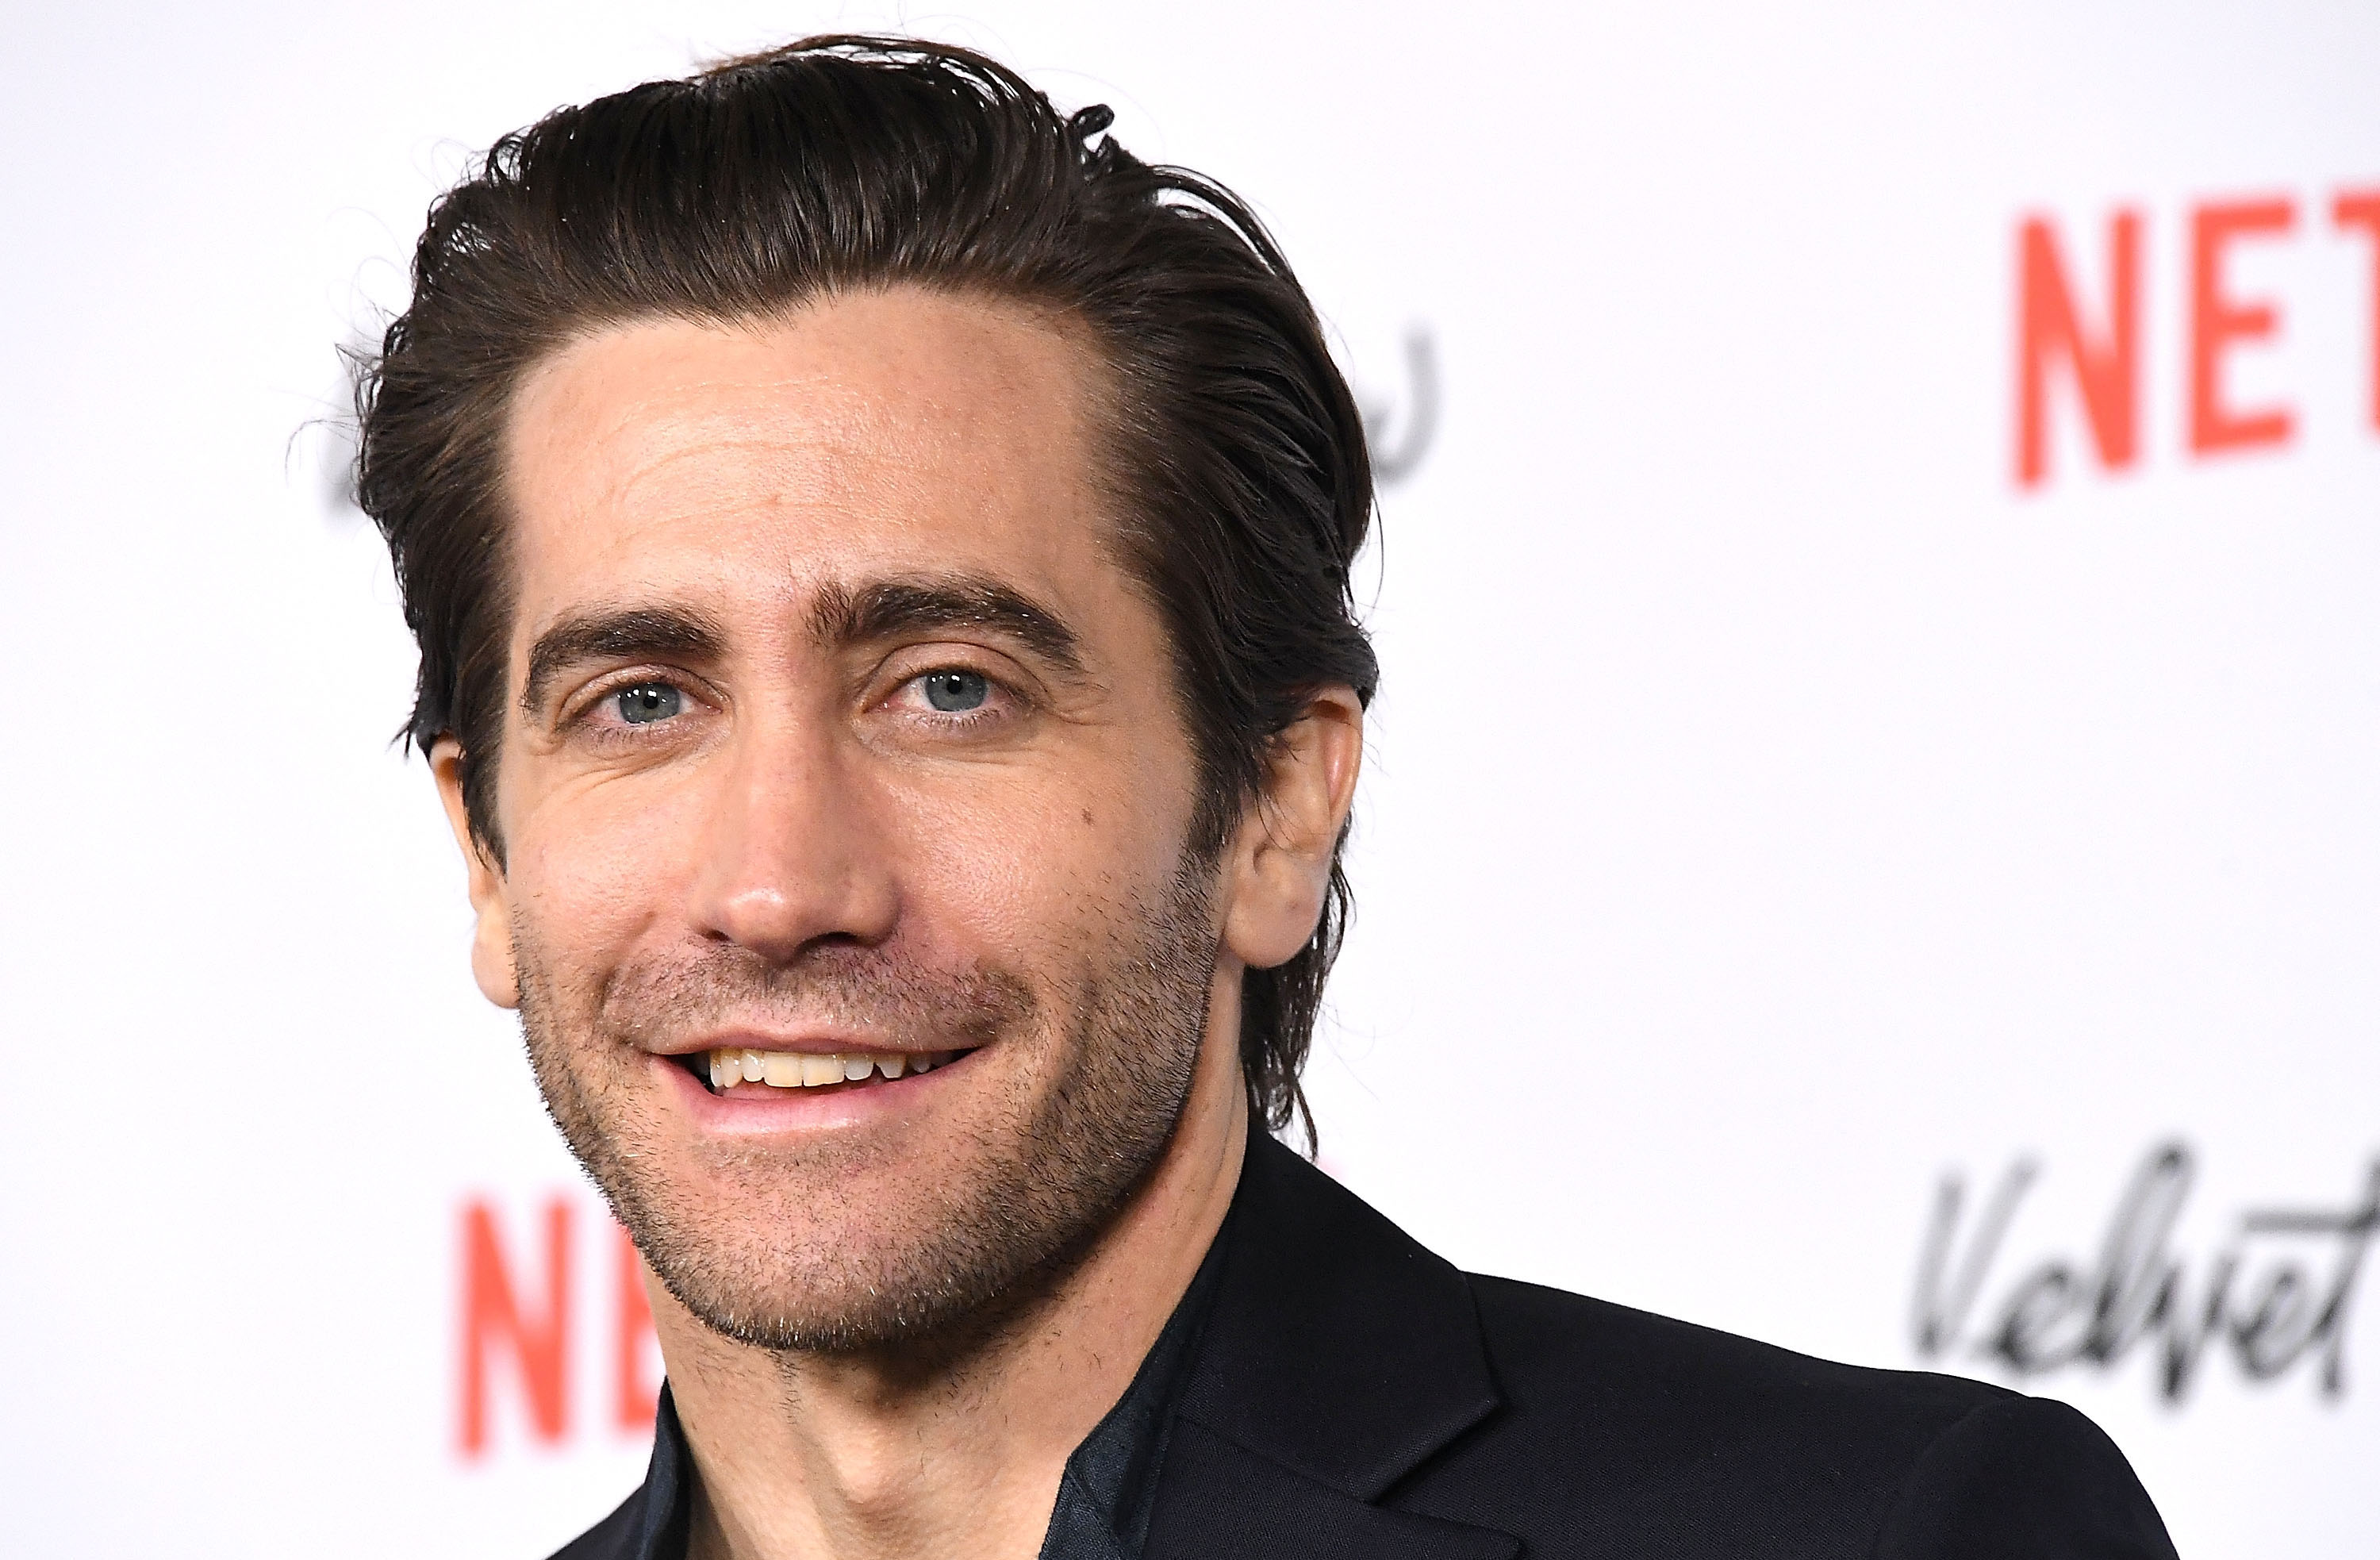 Jake Gyllenhaal Stopped His Play Mid-Performance to Give Coughing Audience Member Water